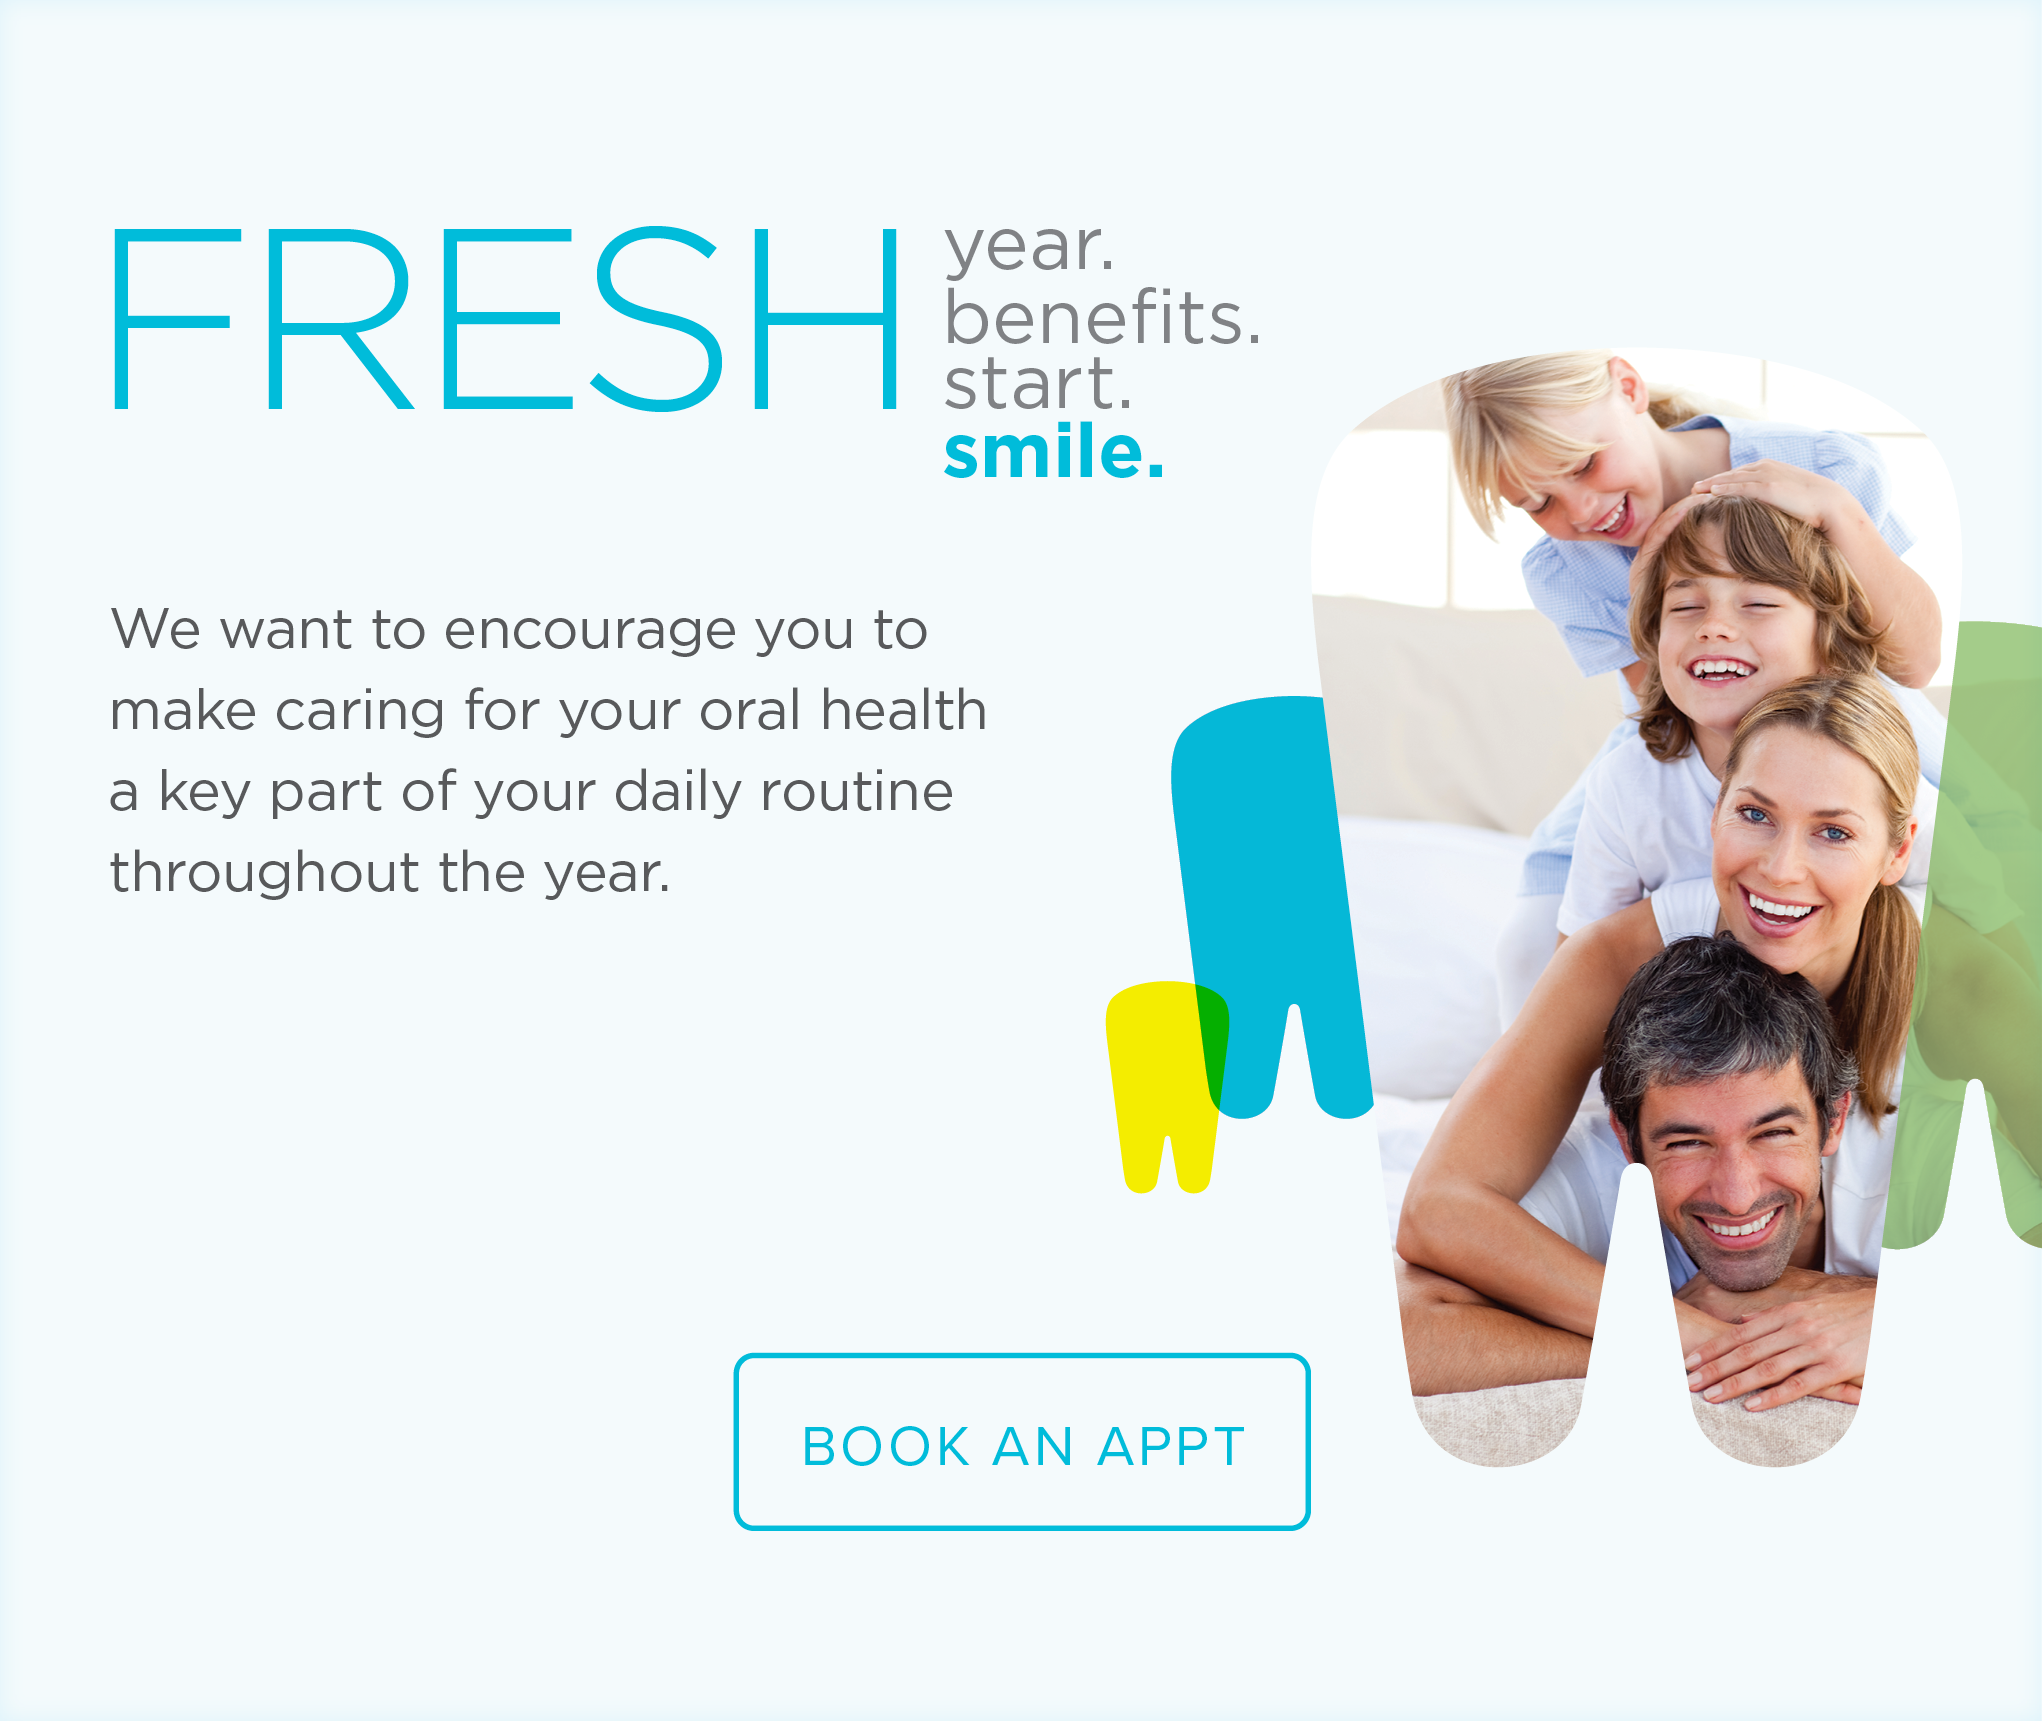 Grove Dental Group and Orthodontics - Make the Most of Your Benefits